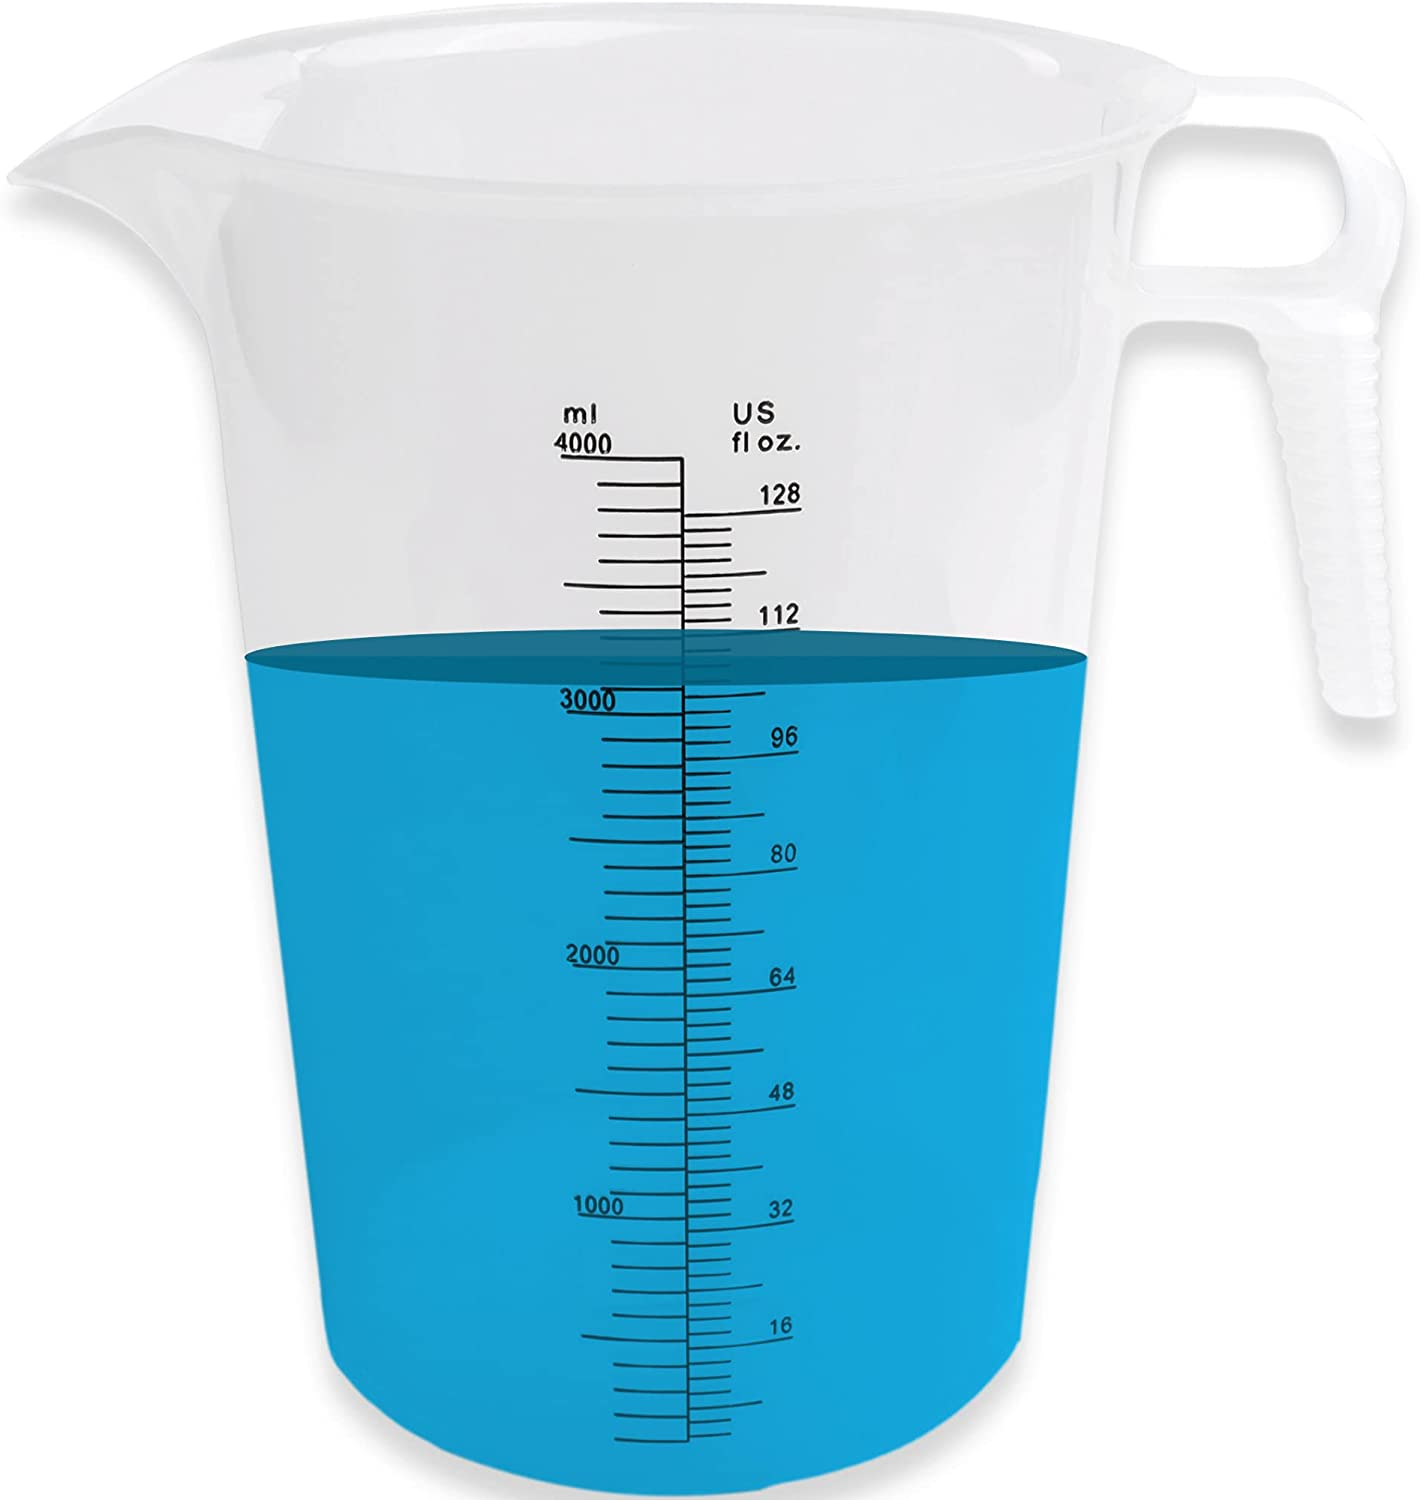 64oz Measuring Pitcher - Measuring Container - Great Pool Measuring Cup For Chemicals Also Used For Motor Oil Measuring, Lawn Measuring, Lye Container - Measuring Cup Plastic